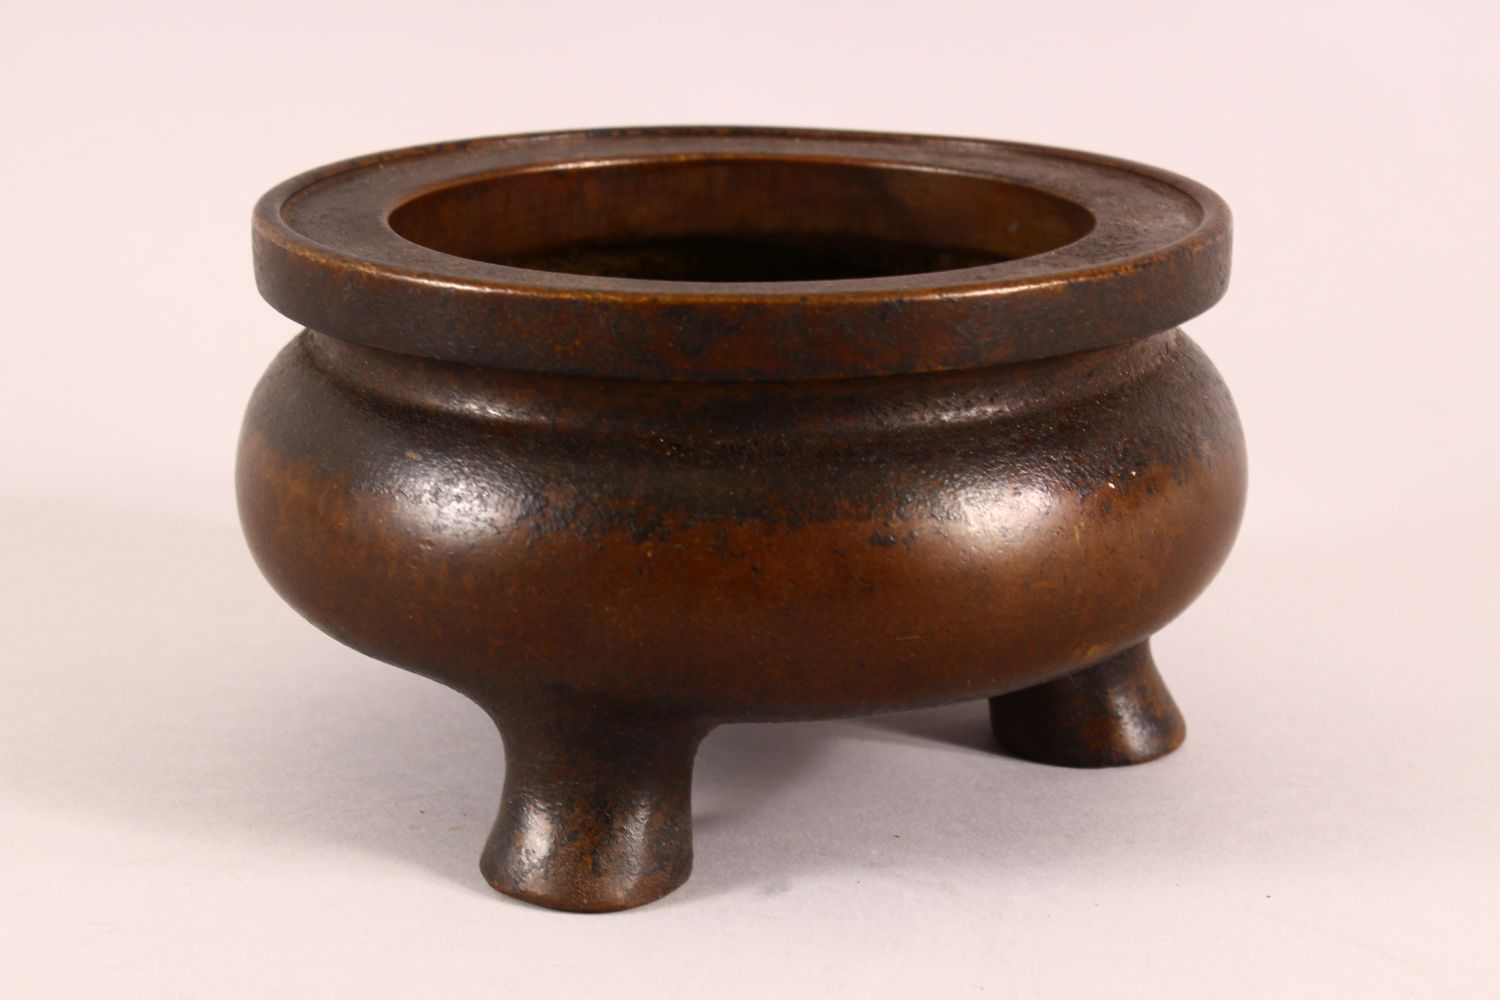 A CHINESE XUANDE STYLE BRONZE TRIPOD CENSER, underside with a mark, 16cm - Image 2 of 7